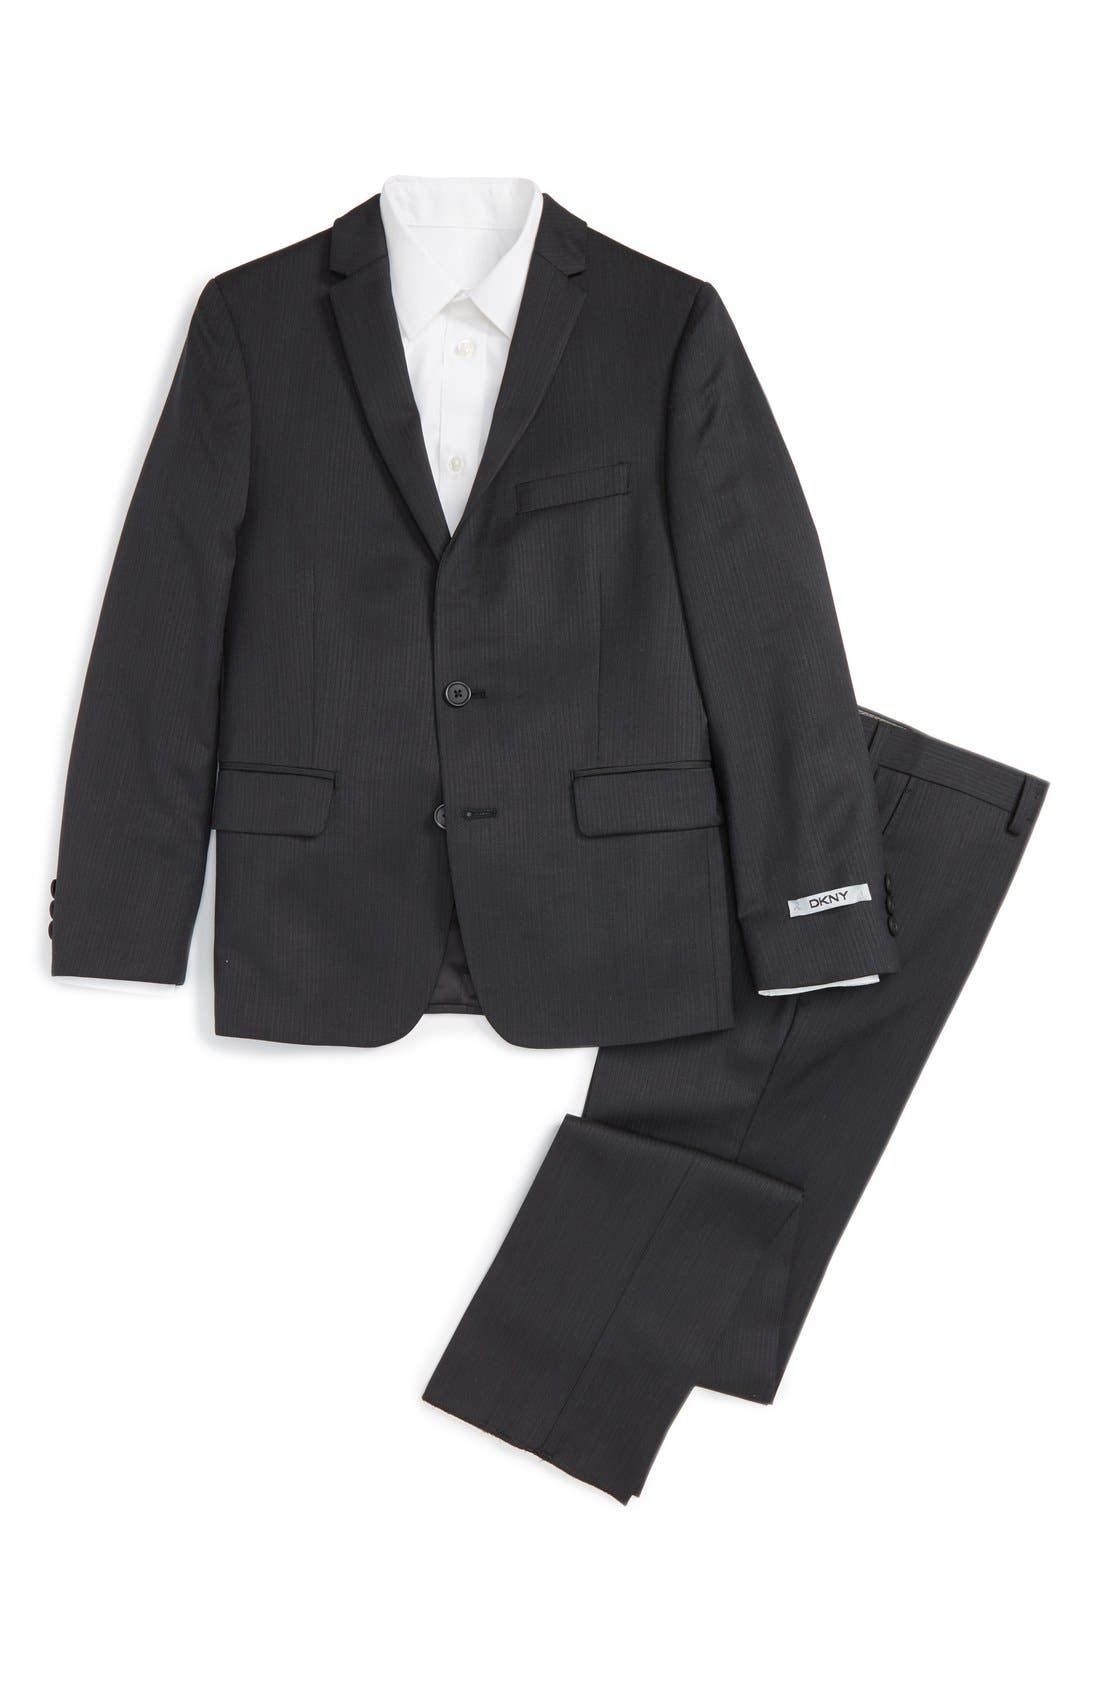 Alternate Image 1 Selected - DKNY Neat Wool Suit (Big Boys)